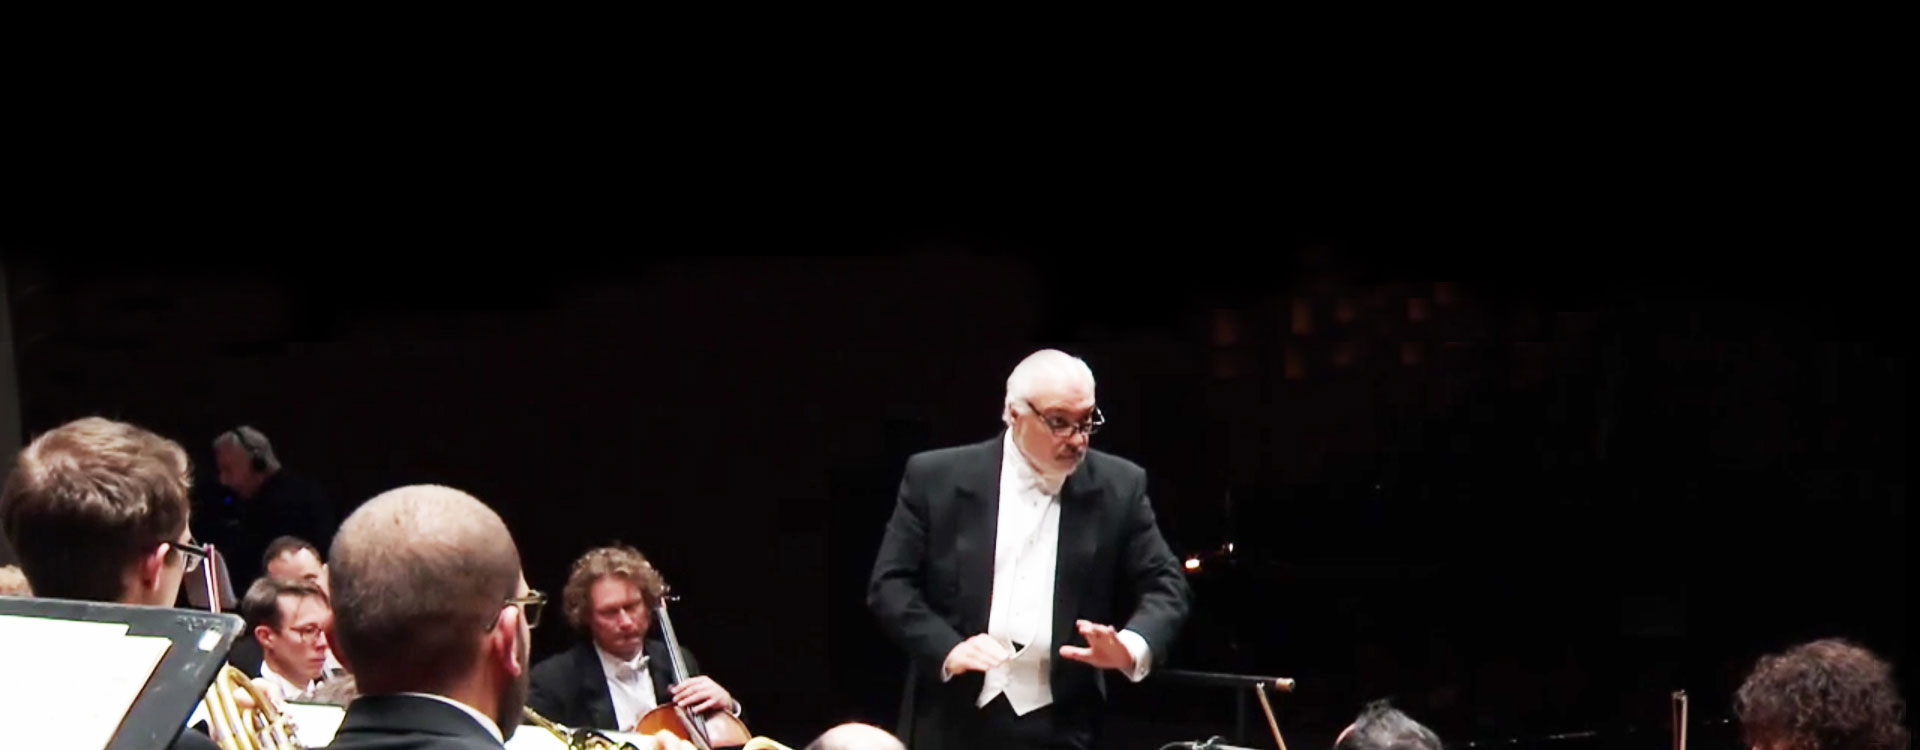 Constantine Orbelian conducts Mozart, Shor, Khachaturian and Offenbach